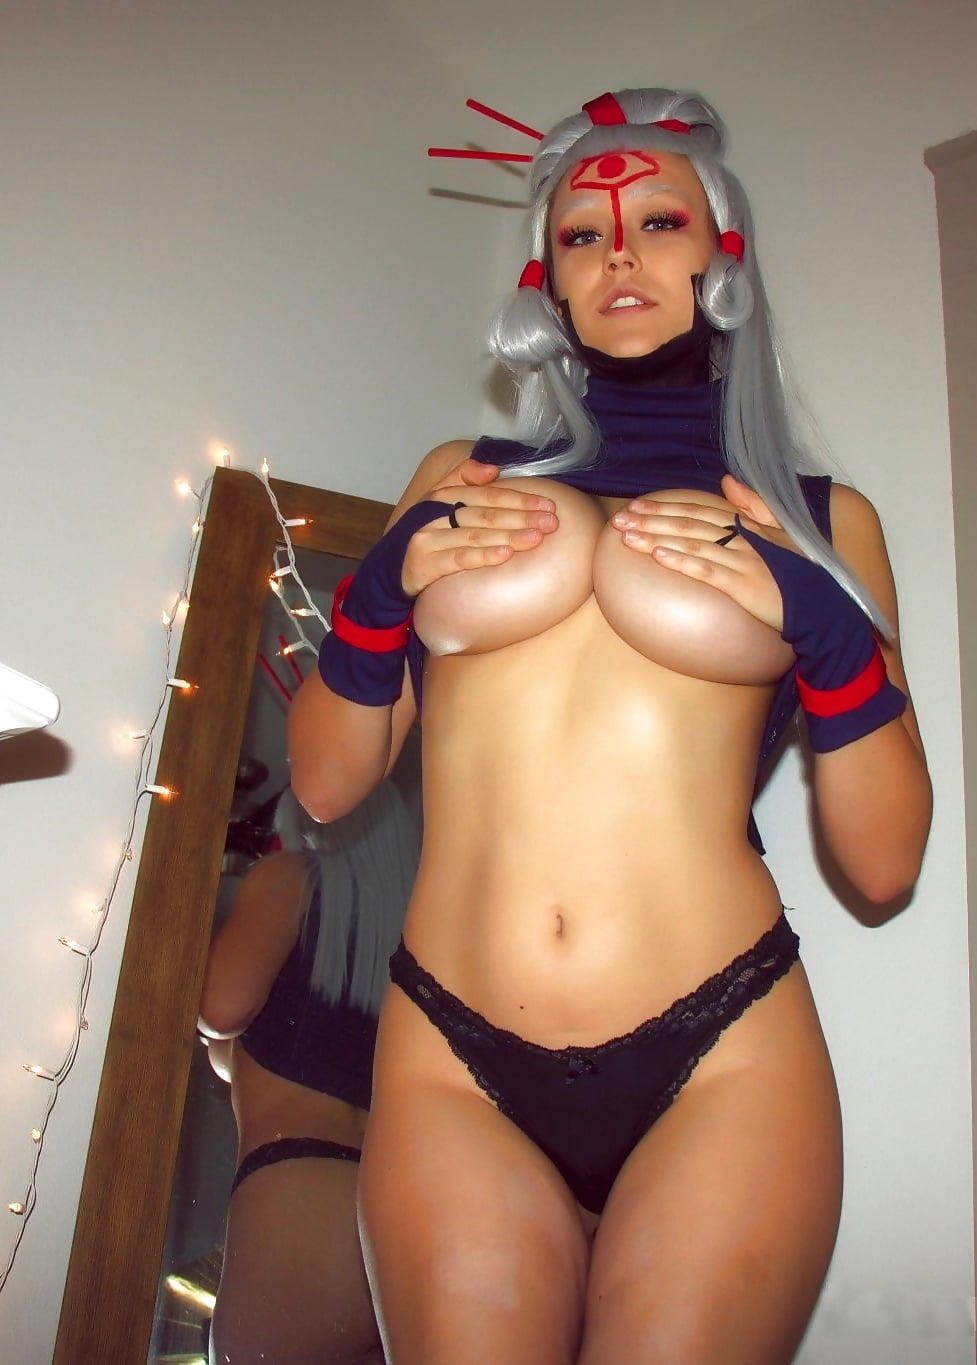 cosplay Legend of porn zelda